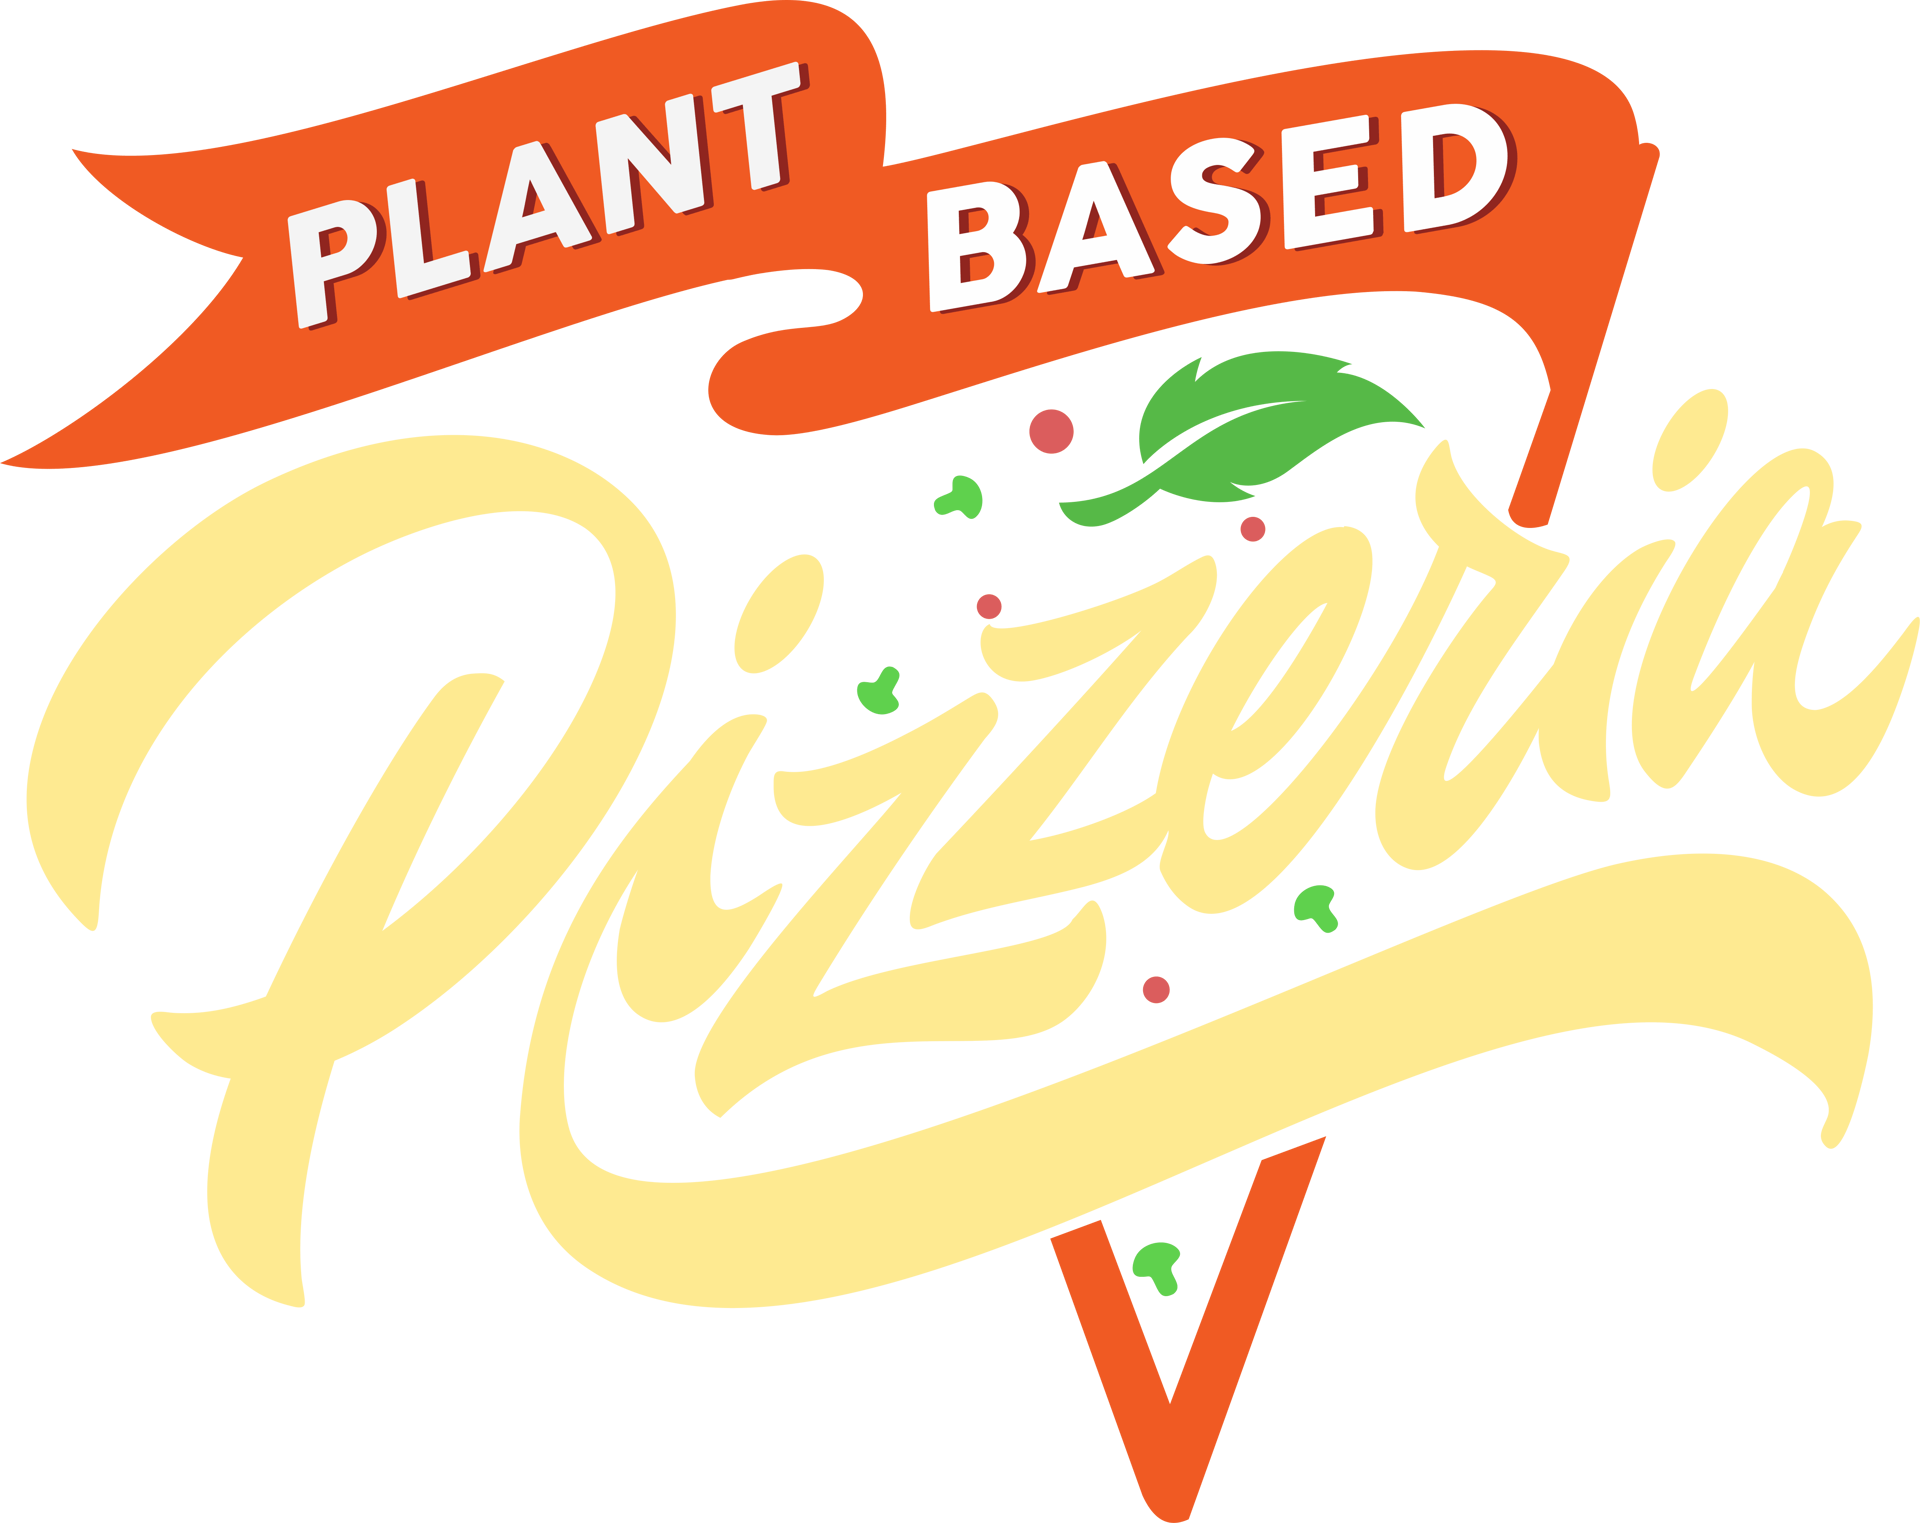 plant based pizzeria logo